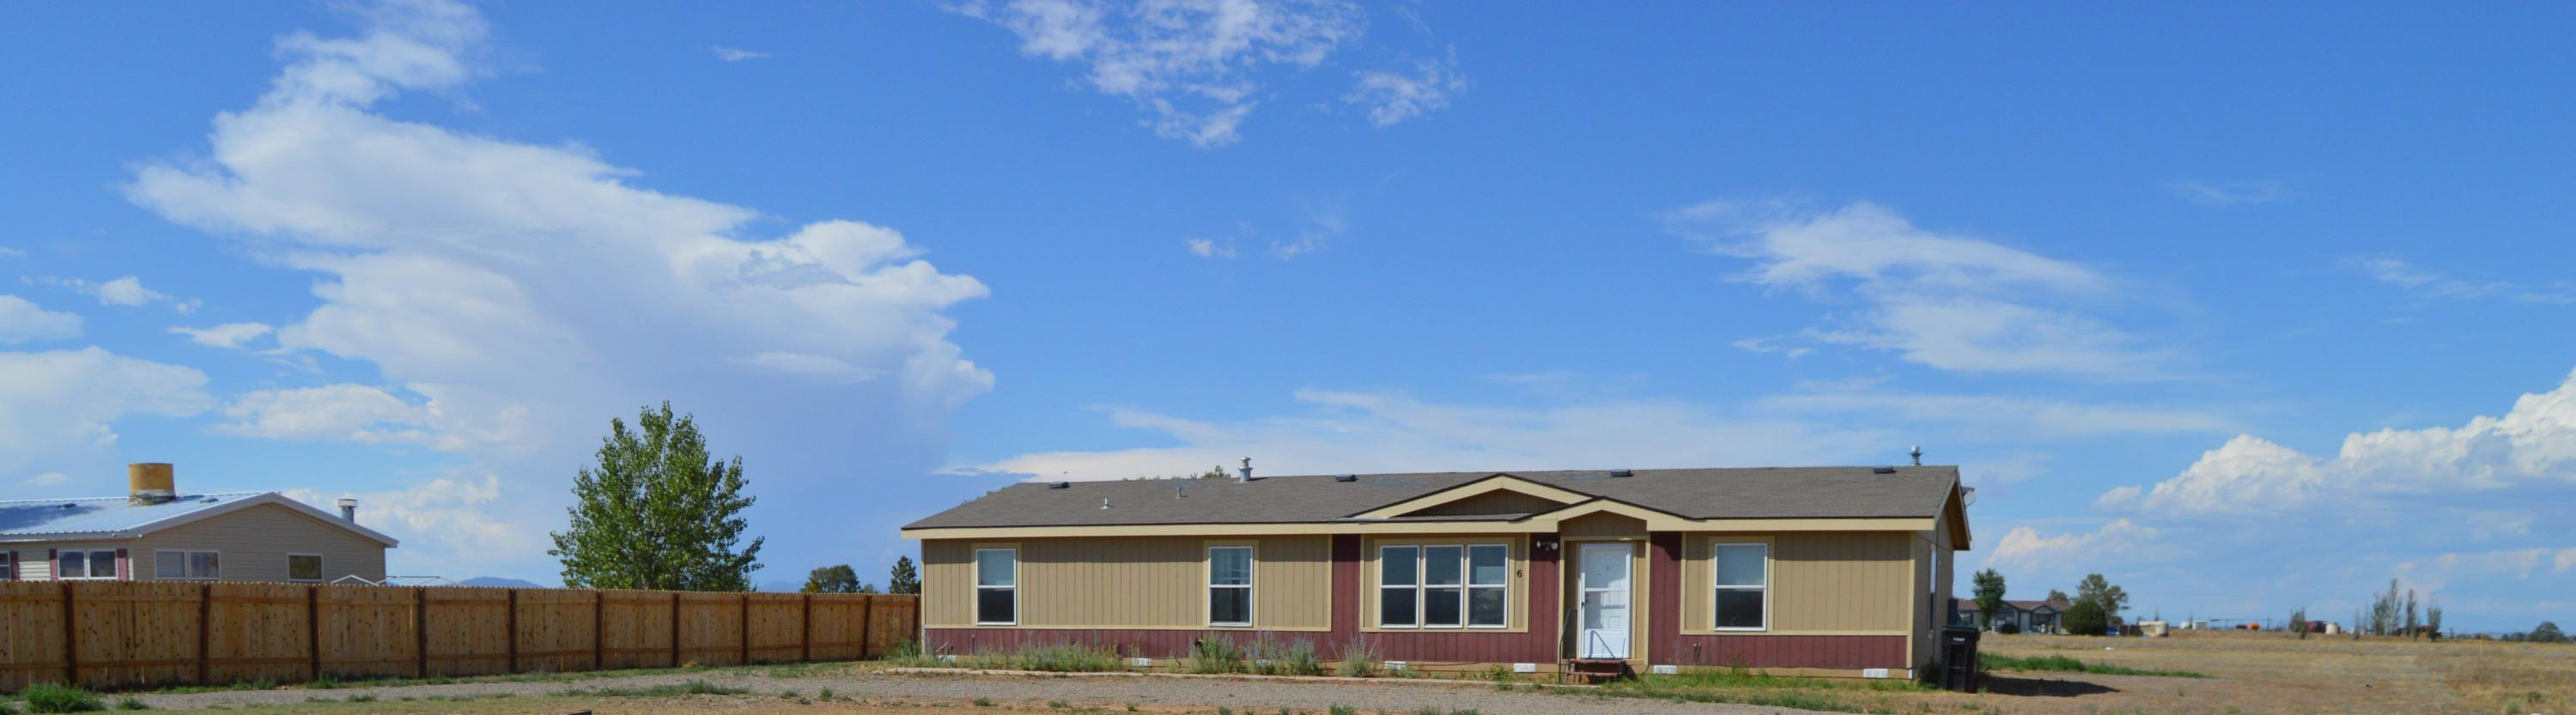 6 MANZANO Street Property Photo - Moriarty, NM real estate listing